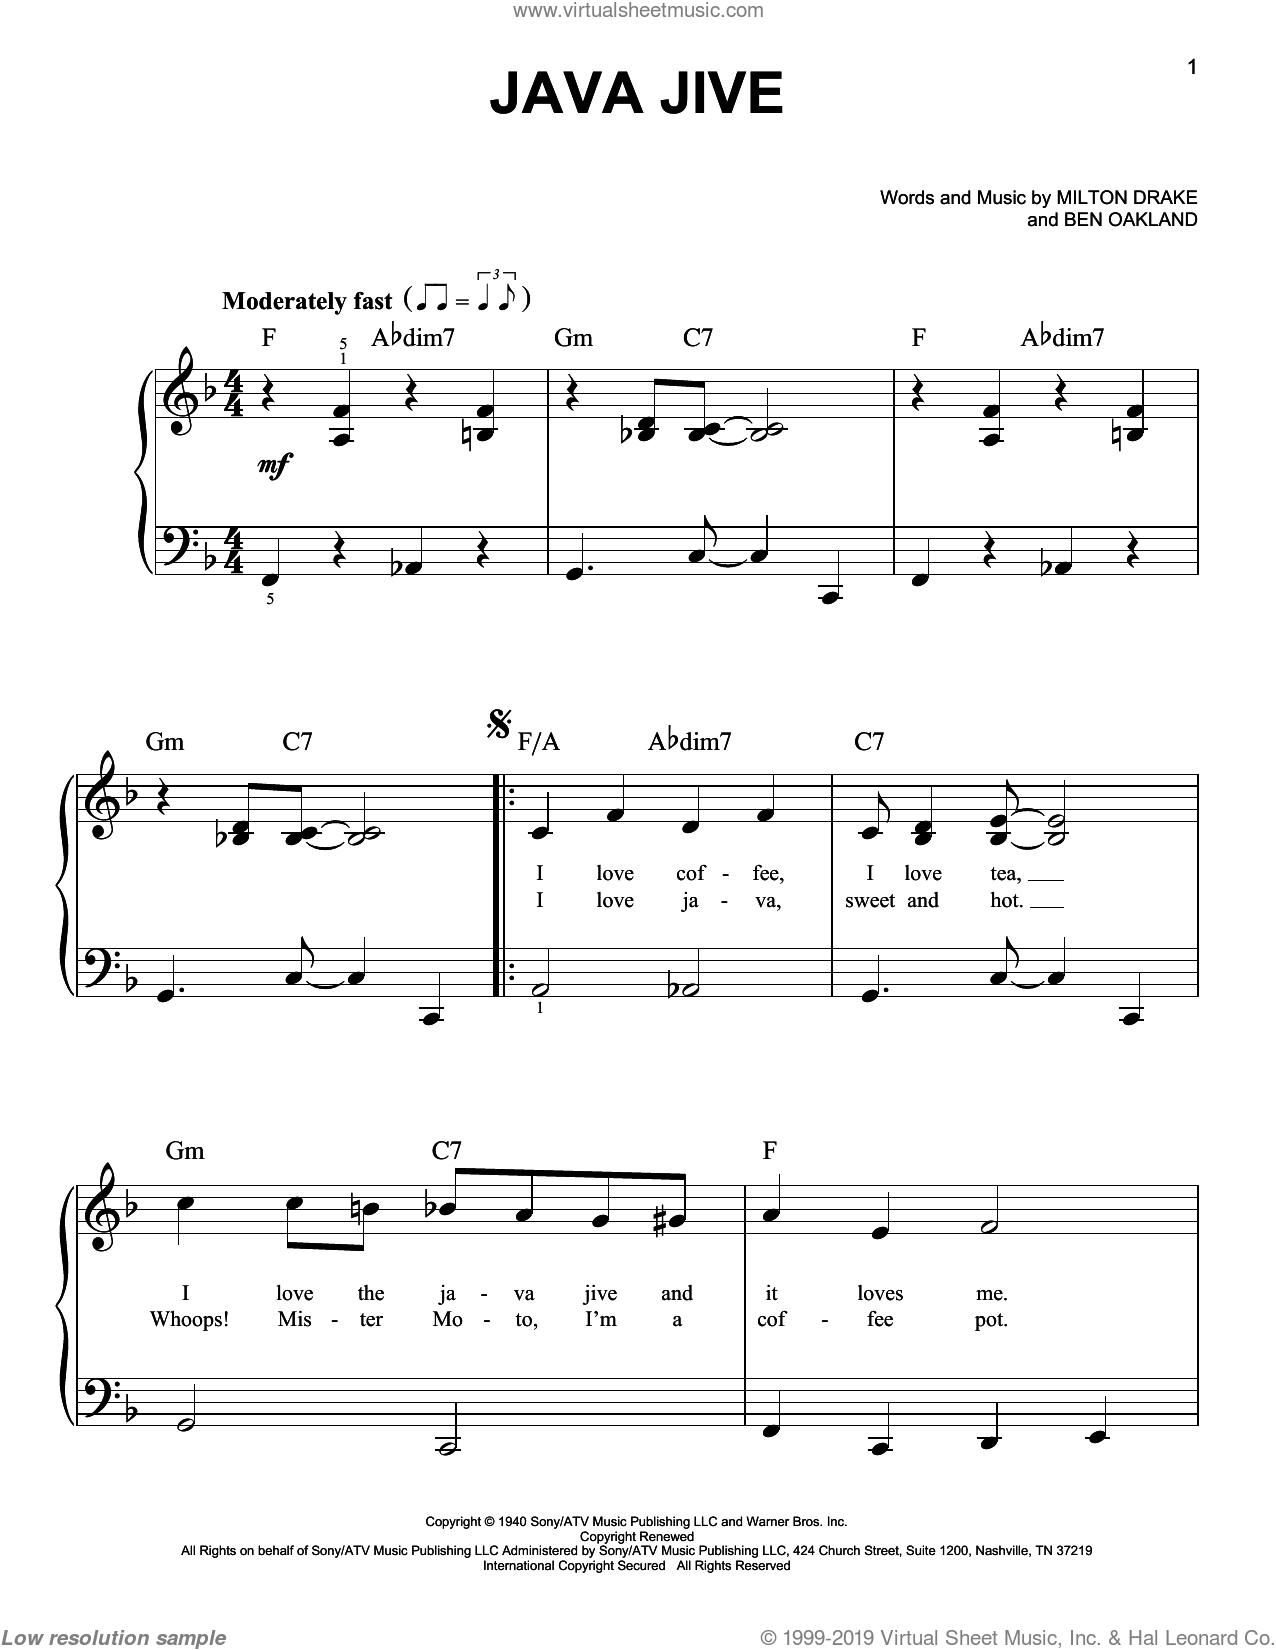 Java Jive sheet music for piano solo (chords) by Milton Drake